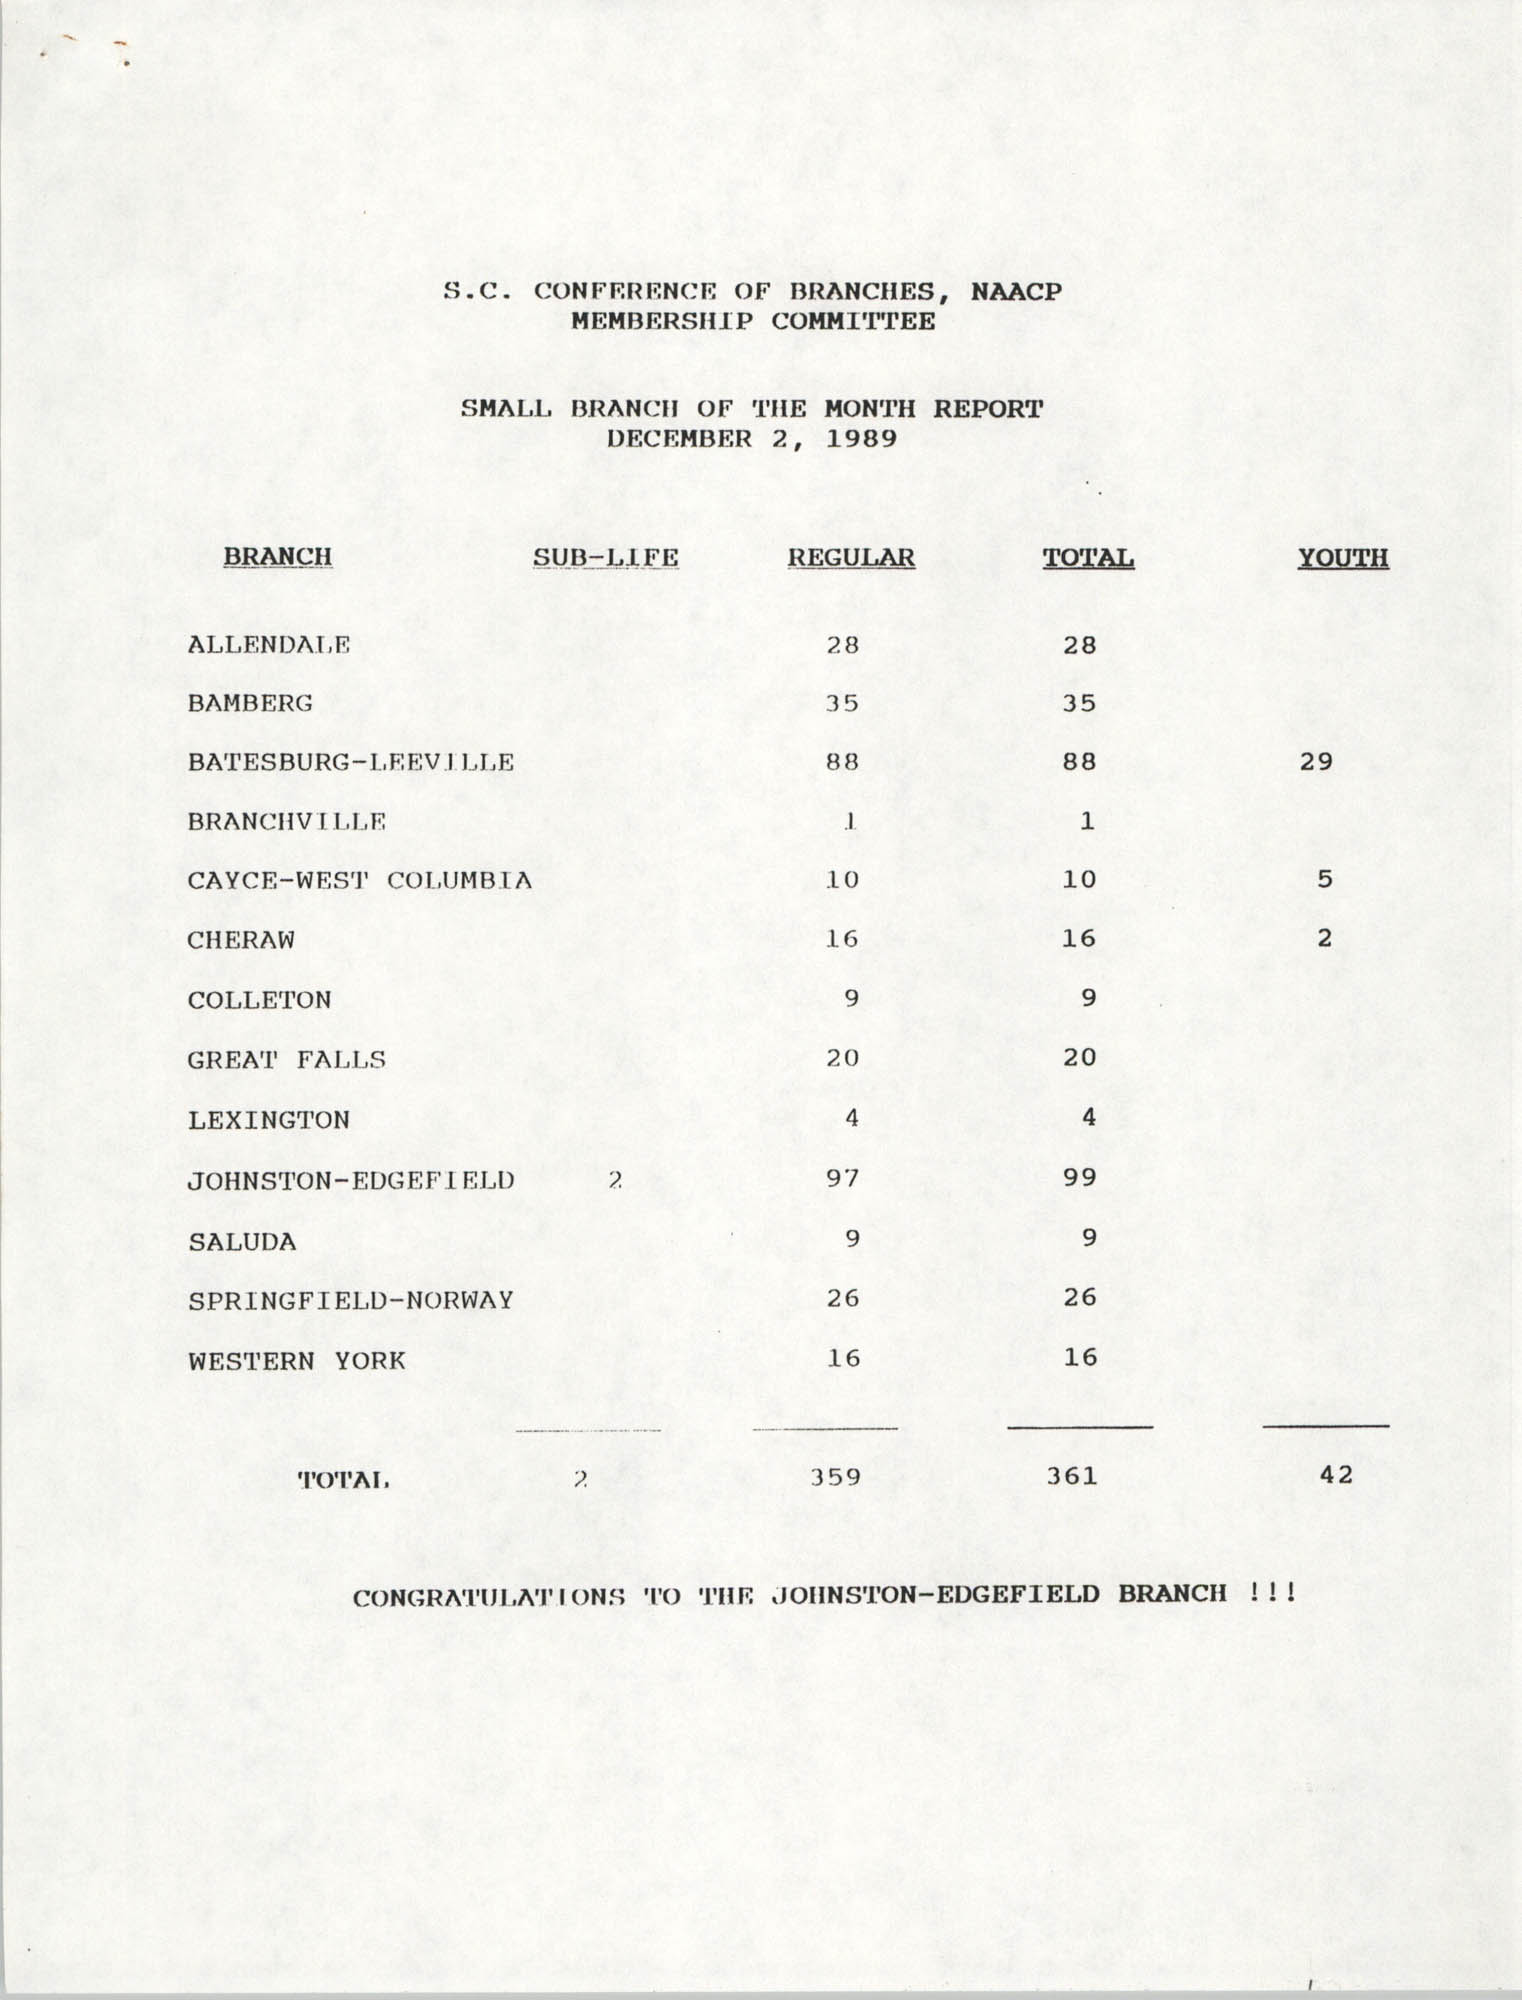 Small and Large Branch of the Month Reports, South Carolina Conference of Branches of the NAACP, December 2, 1989